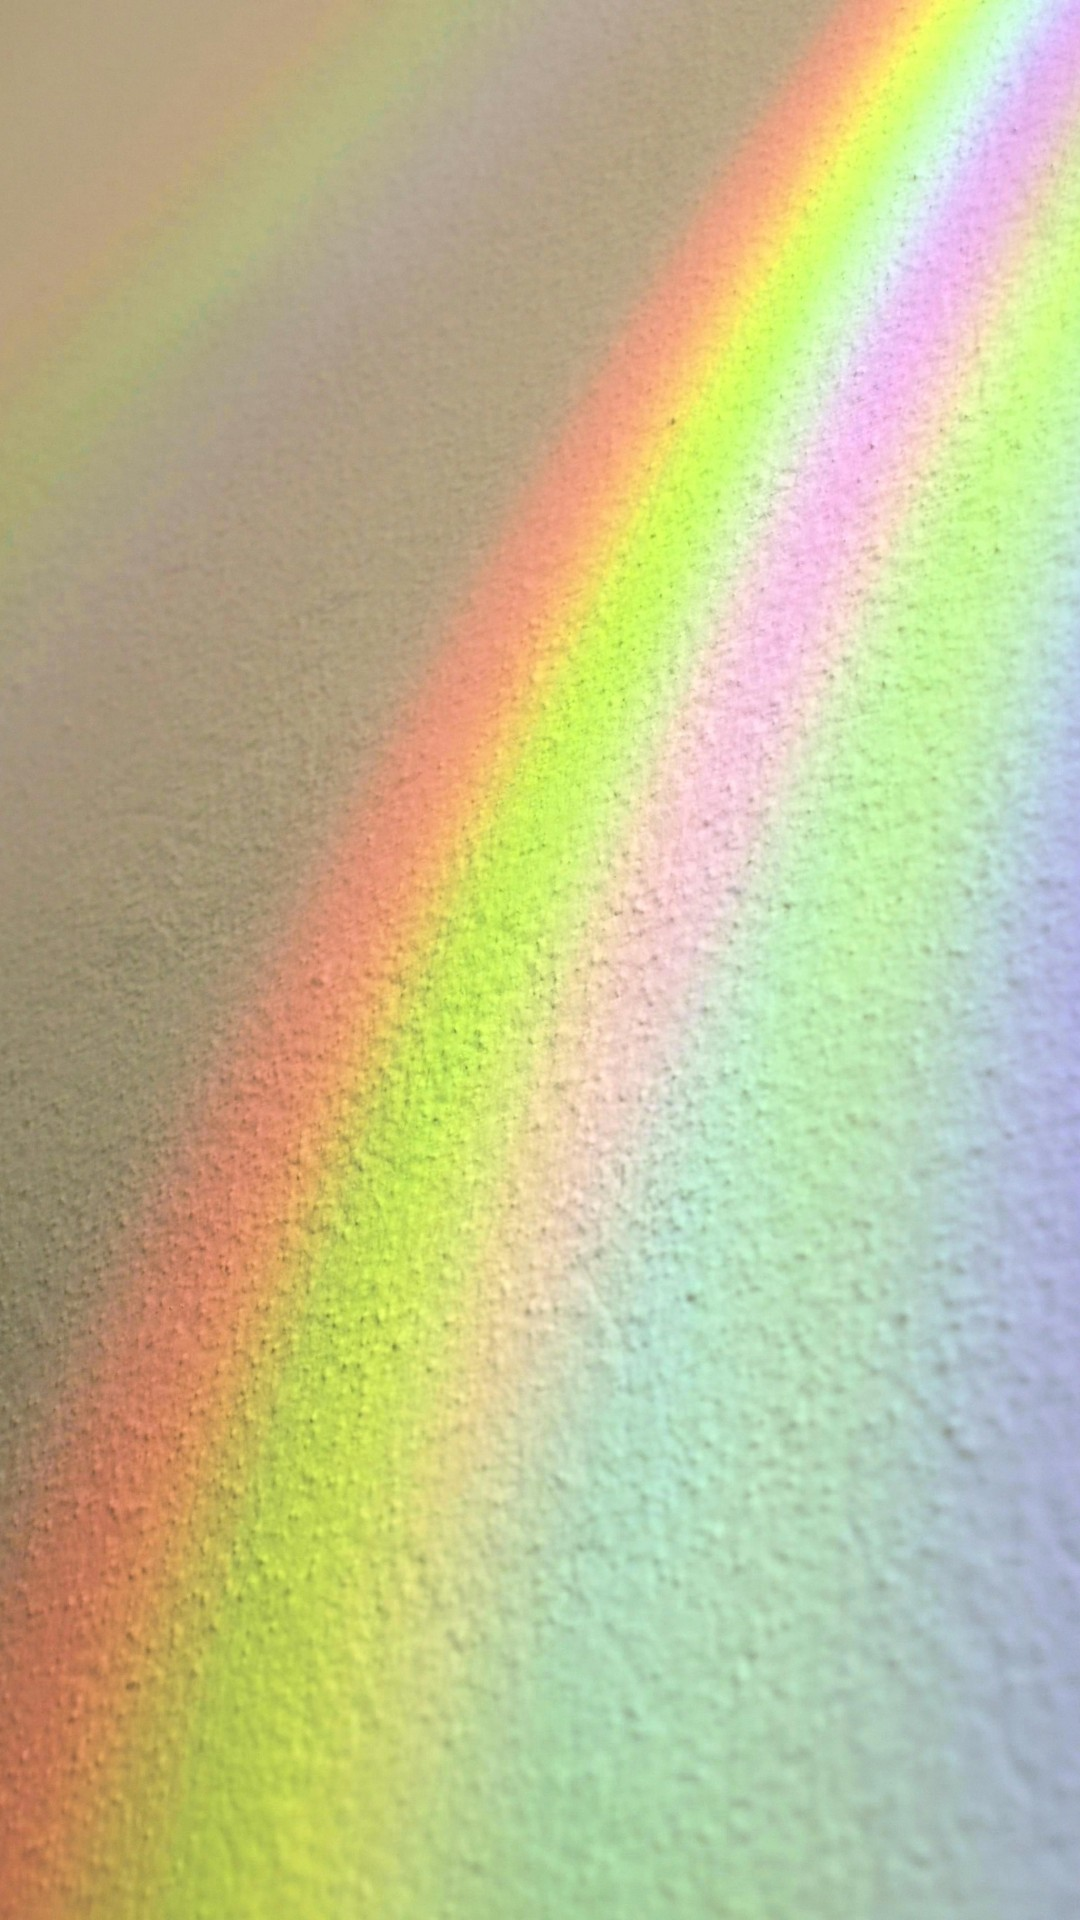 Colorful Rainbow Light Iphone Hd Wallpaper Iphone Wallpaper